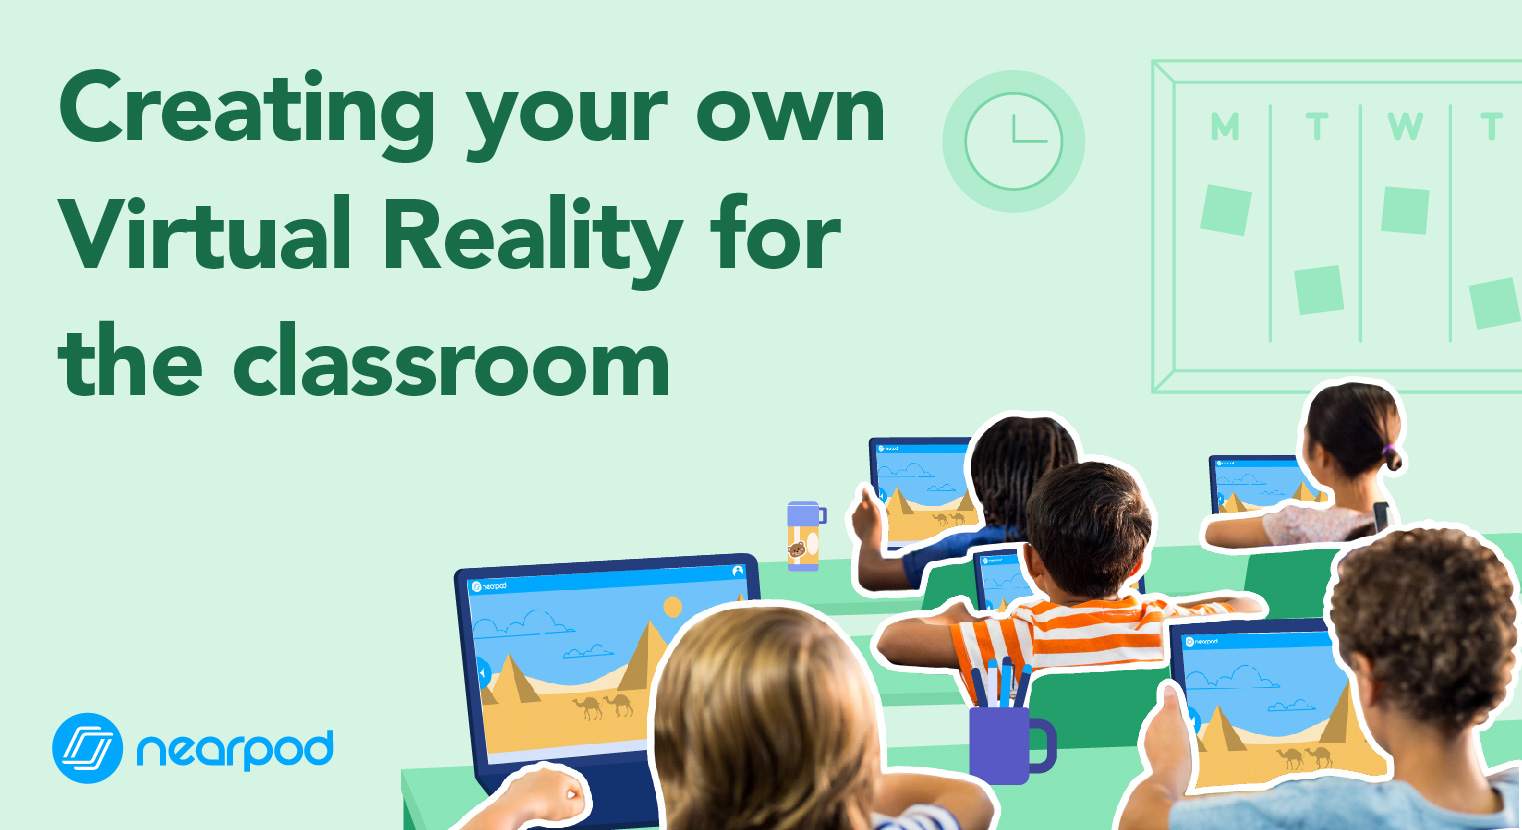 Creating your own Virtual Reality for the classroom